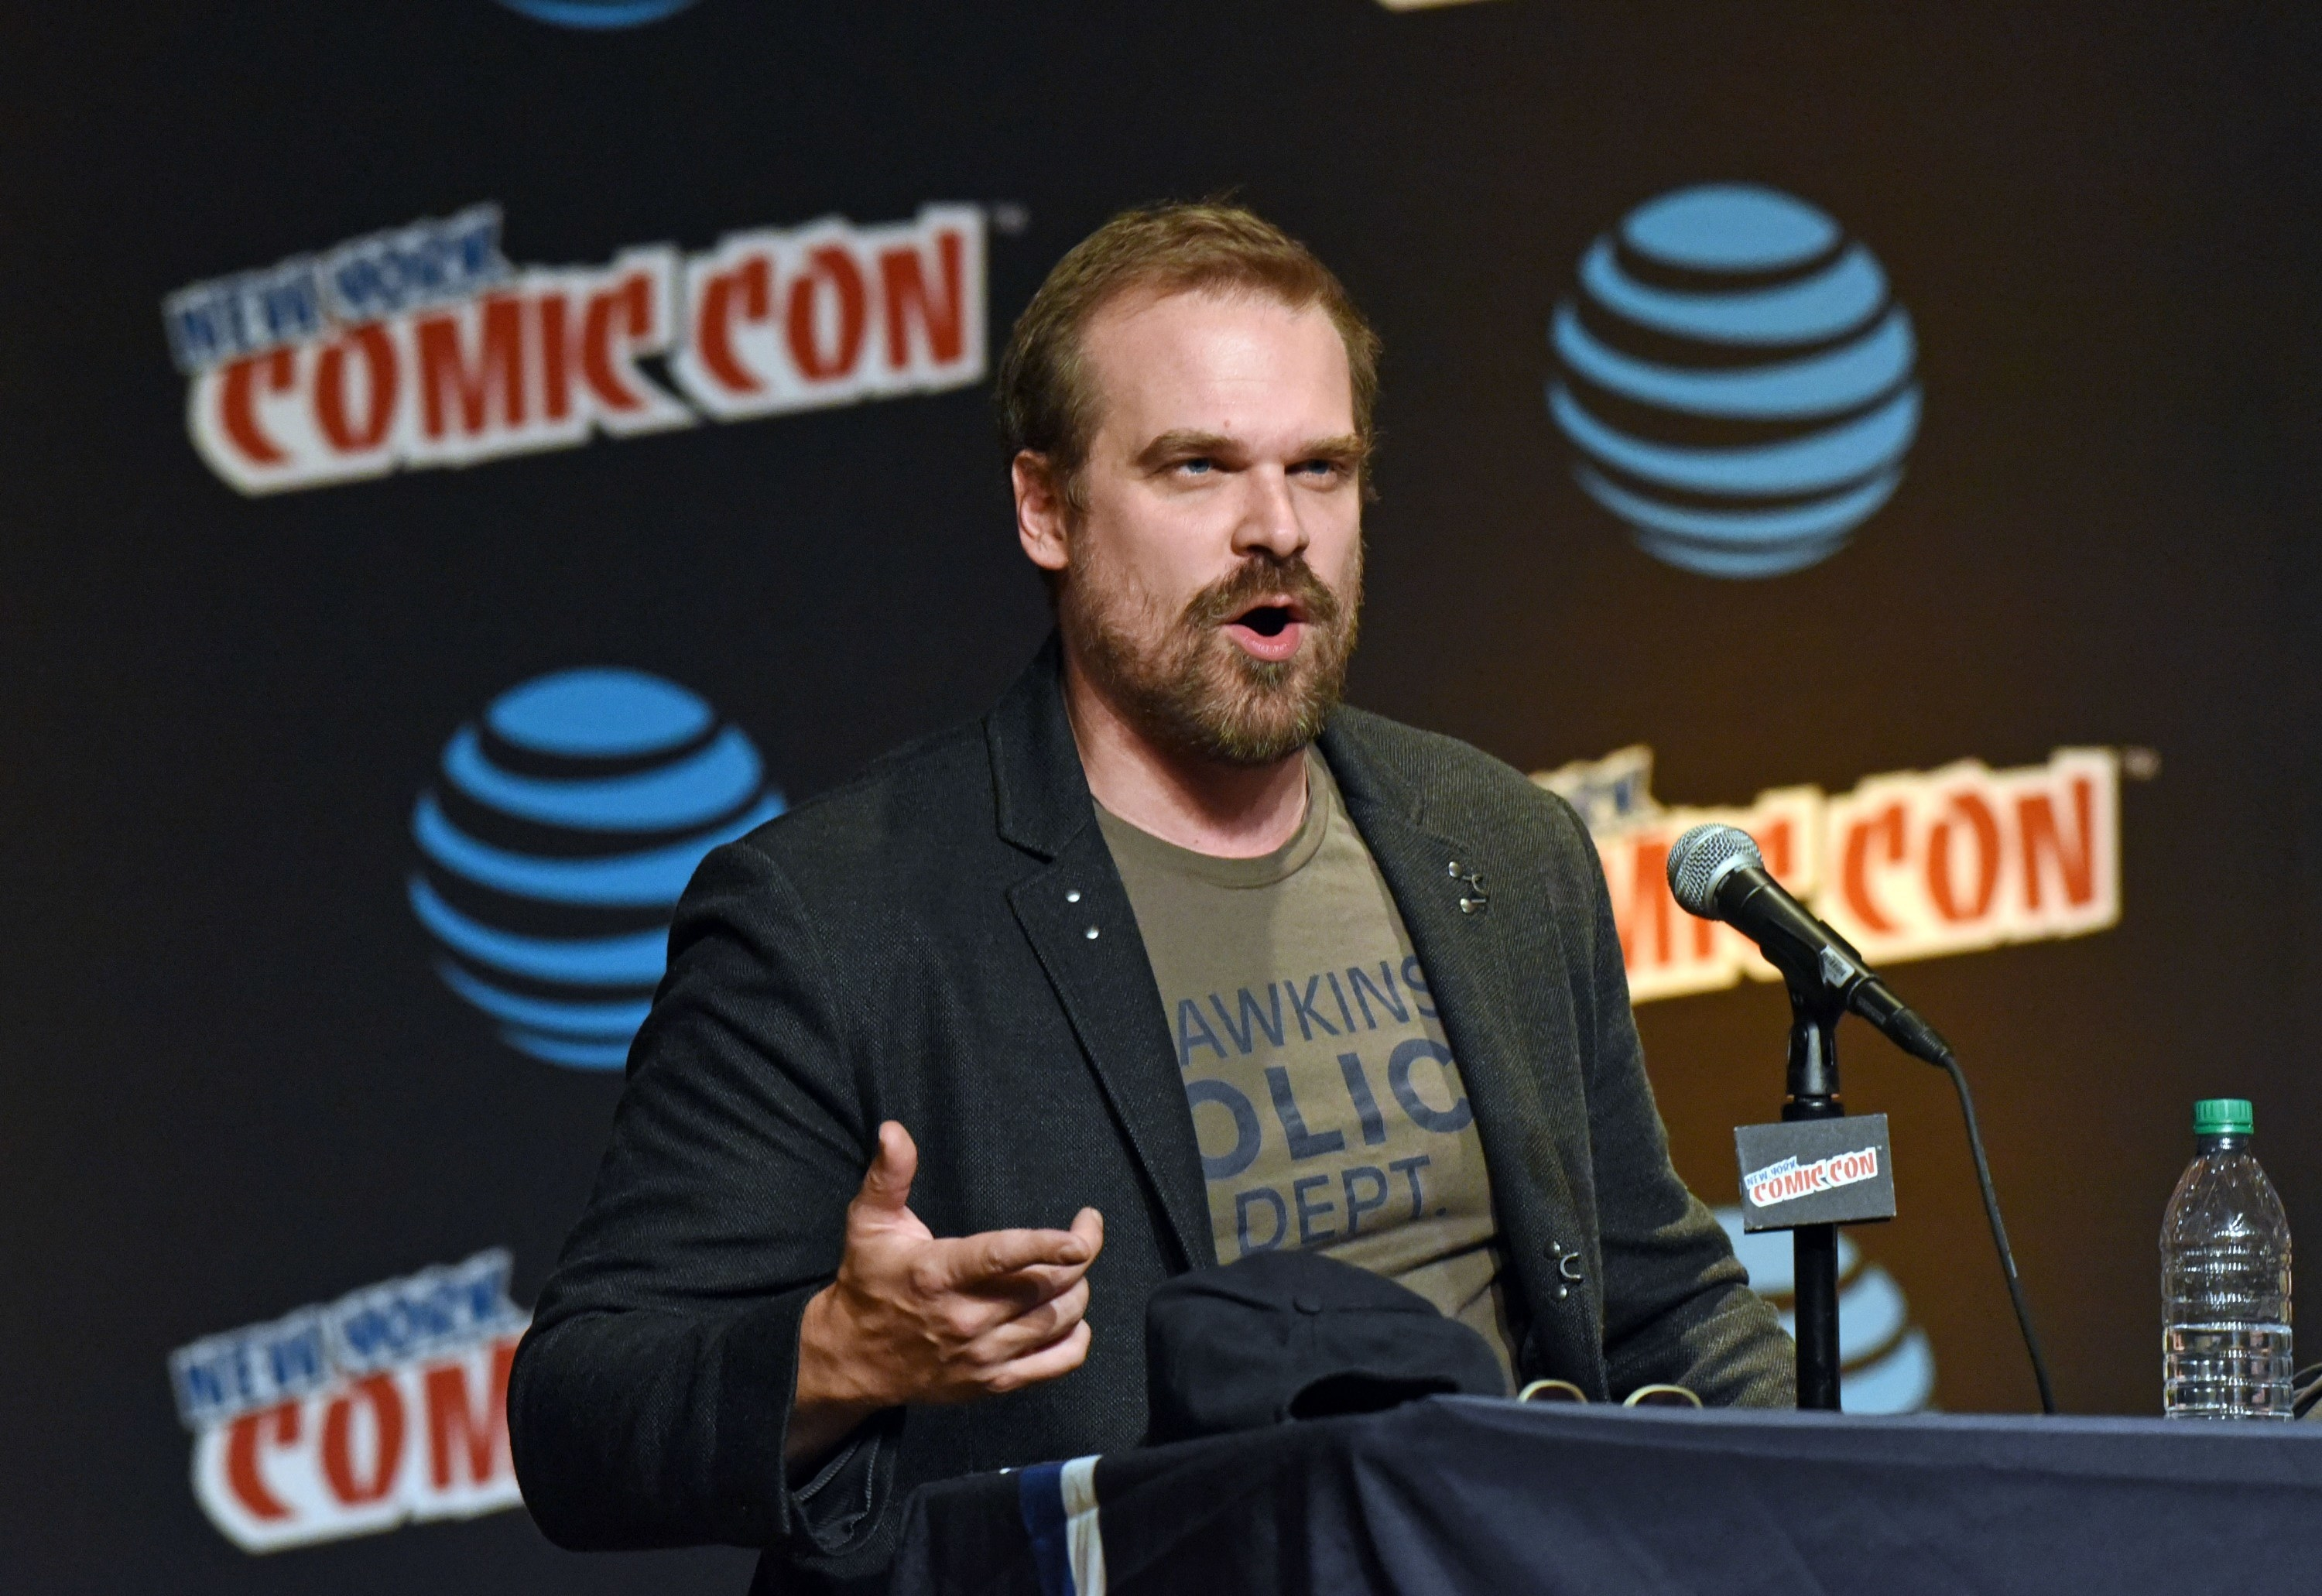 David Harbour at the 2016 New York Comic Con panel for Stranger Things